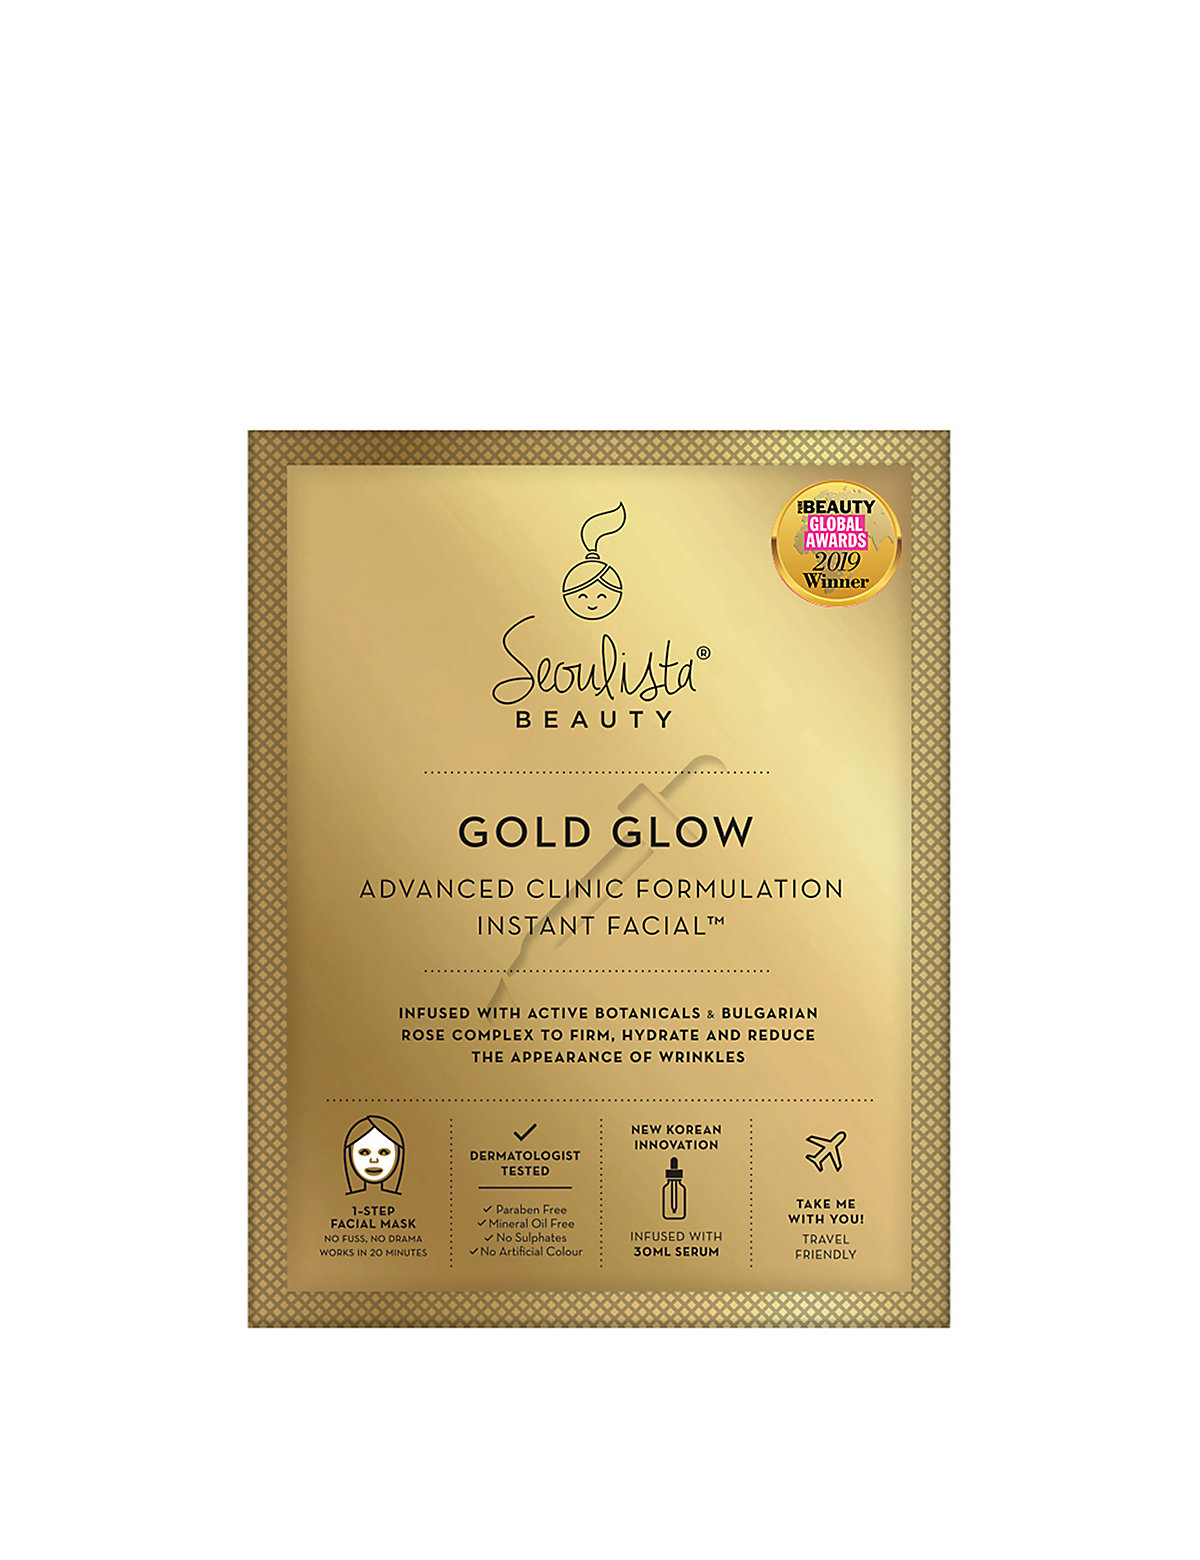 Seoulista Beauty Gold Glow Mask Instant Facial